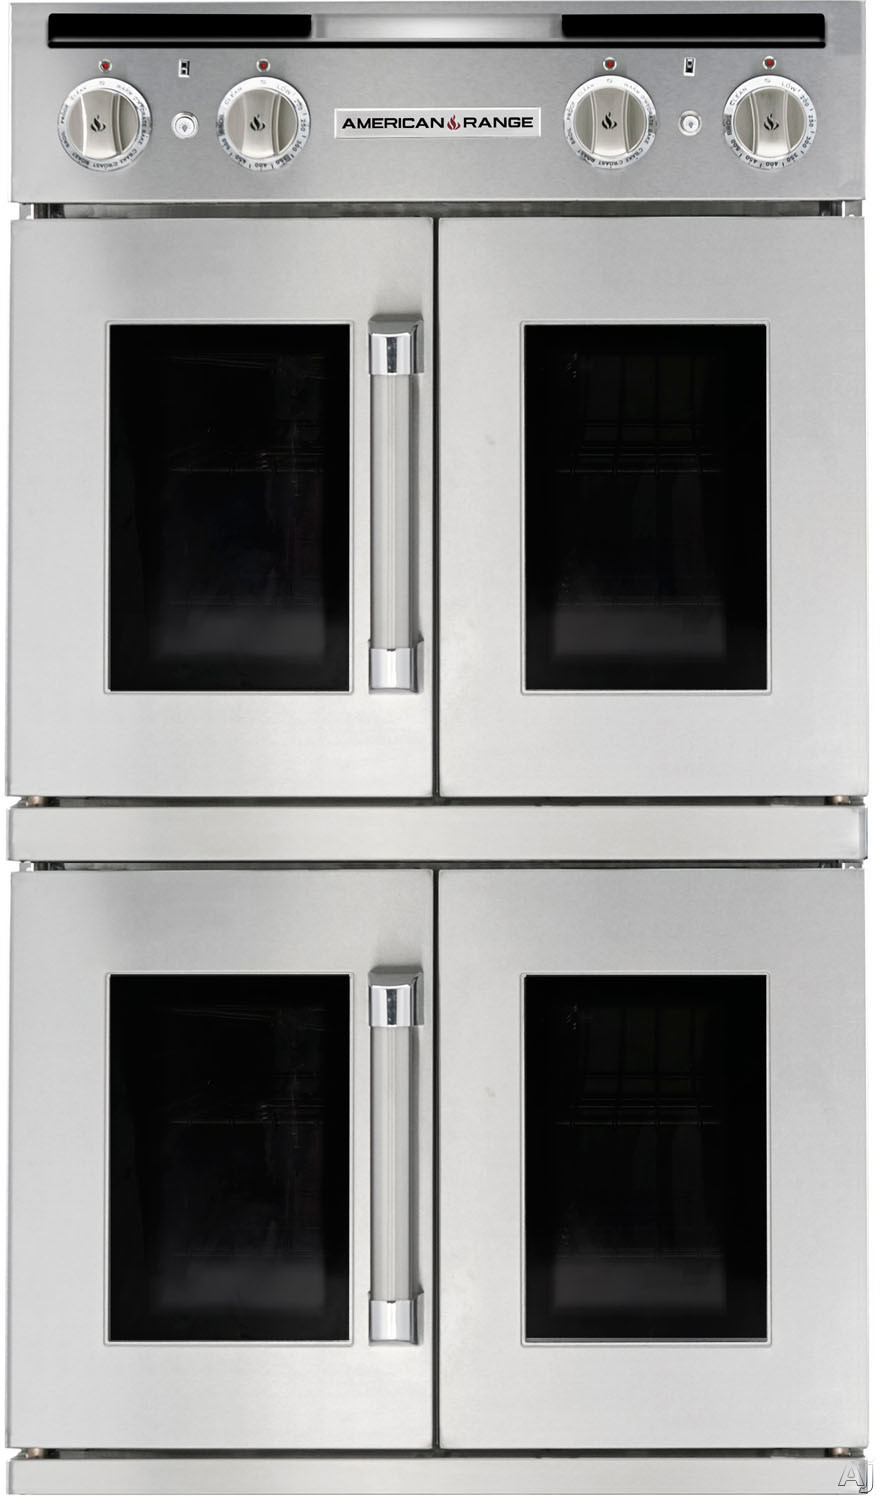 American Range Legacy Series AROFFG230N 30 Inch Double French Door Gas Wall Oven with 4.7 cu. ft. Capacity, Innovection Convection, Manual Clean, Infrared Broiler, Proofing and Porcelainized Interior: